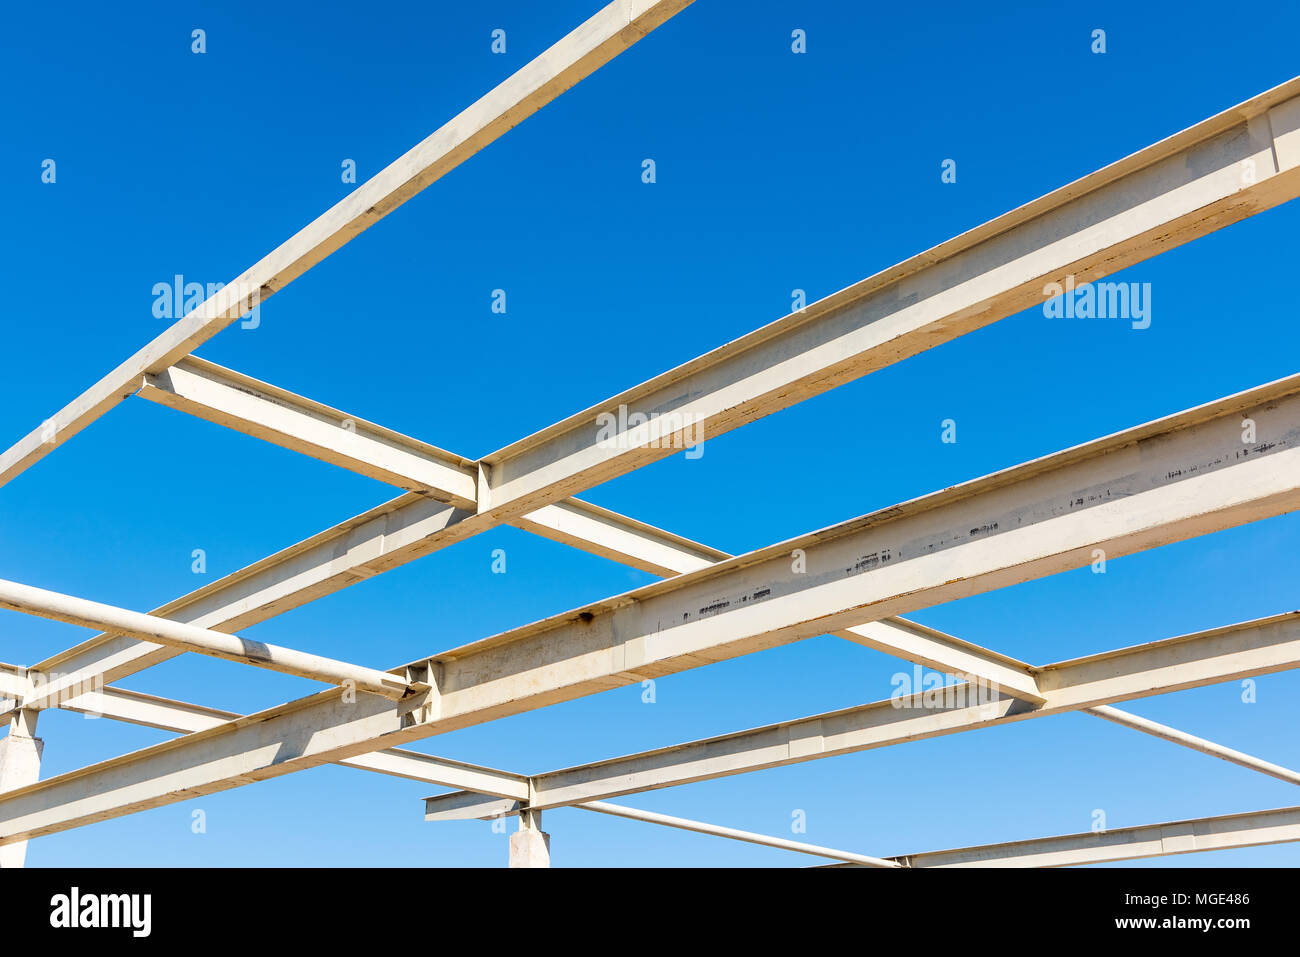 Steel structure and connecting joint for roofing., Steel frame. Stock Photo